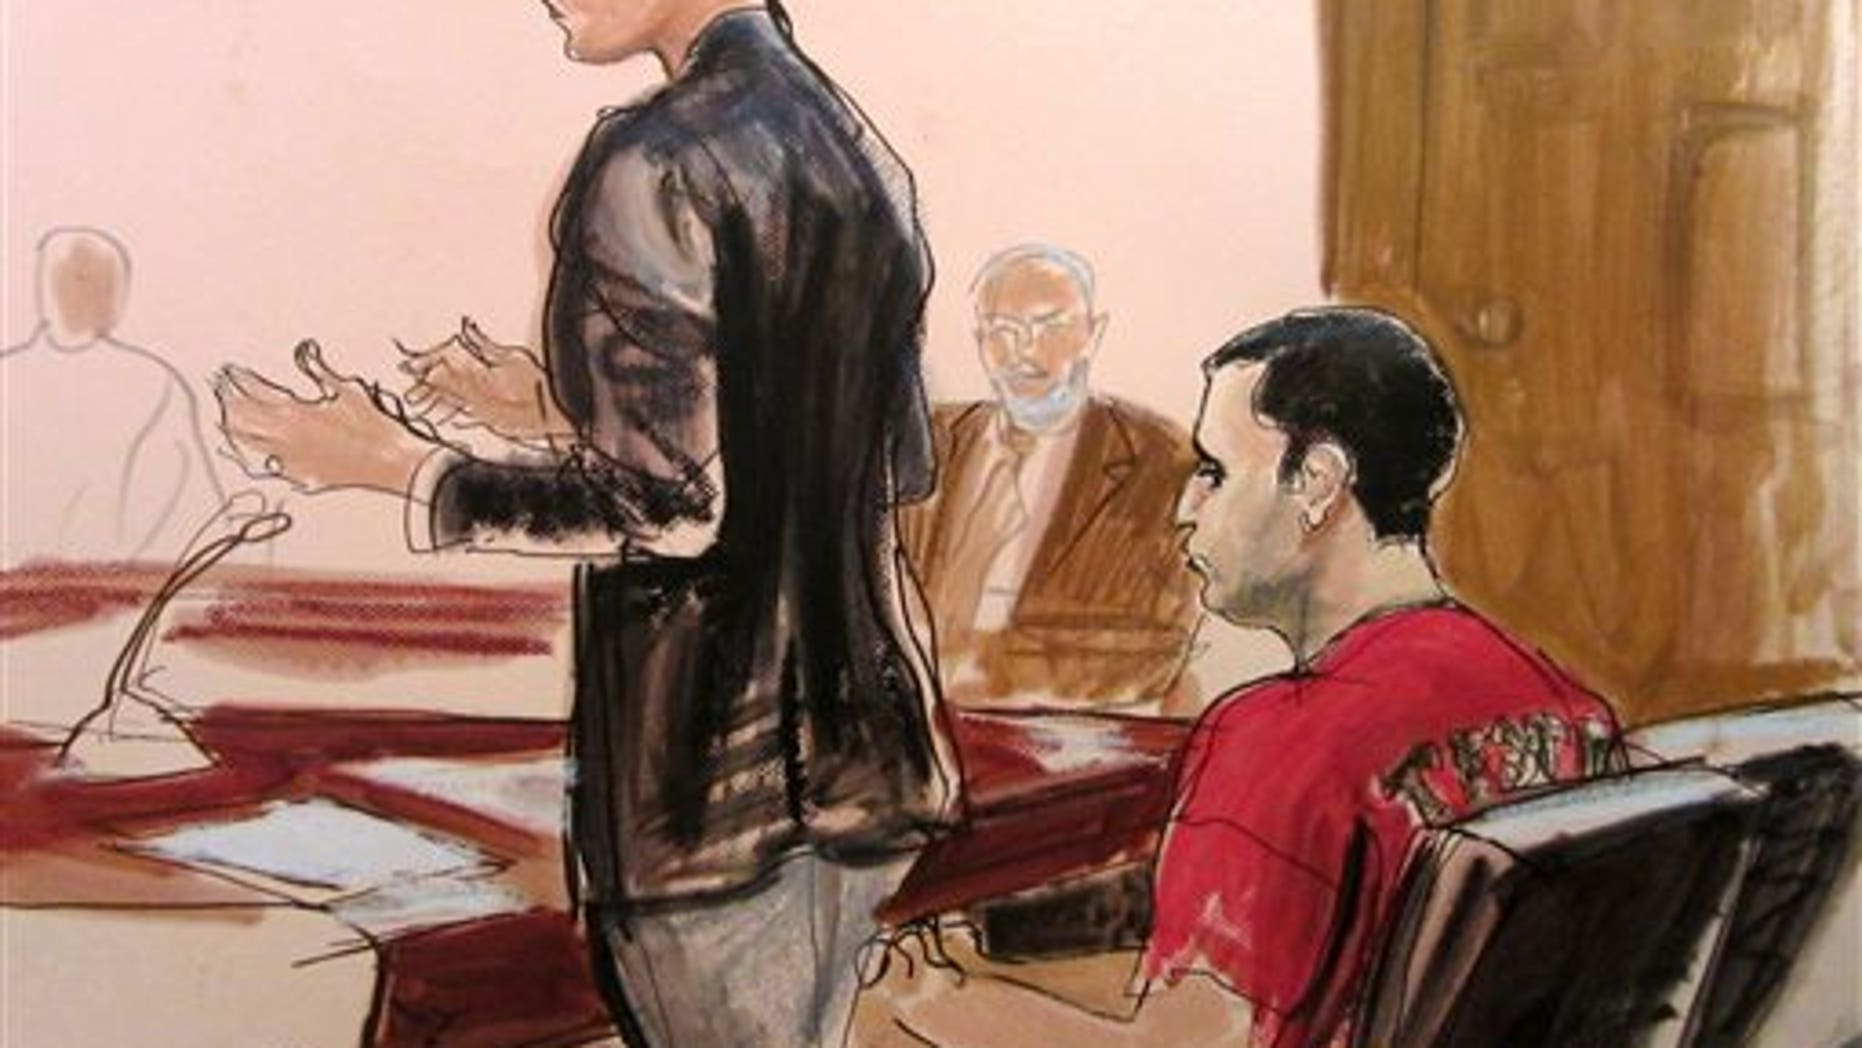 Courtroom drawing of federal defender Julia Gatto requesting bail for Officer Gilberto Valle, on Oct. 25, 2012.